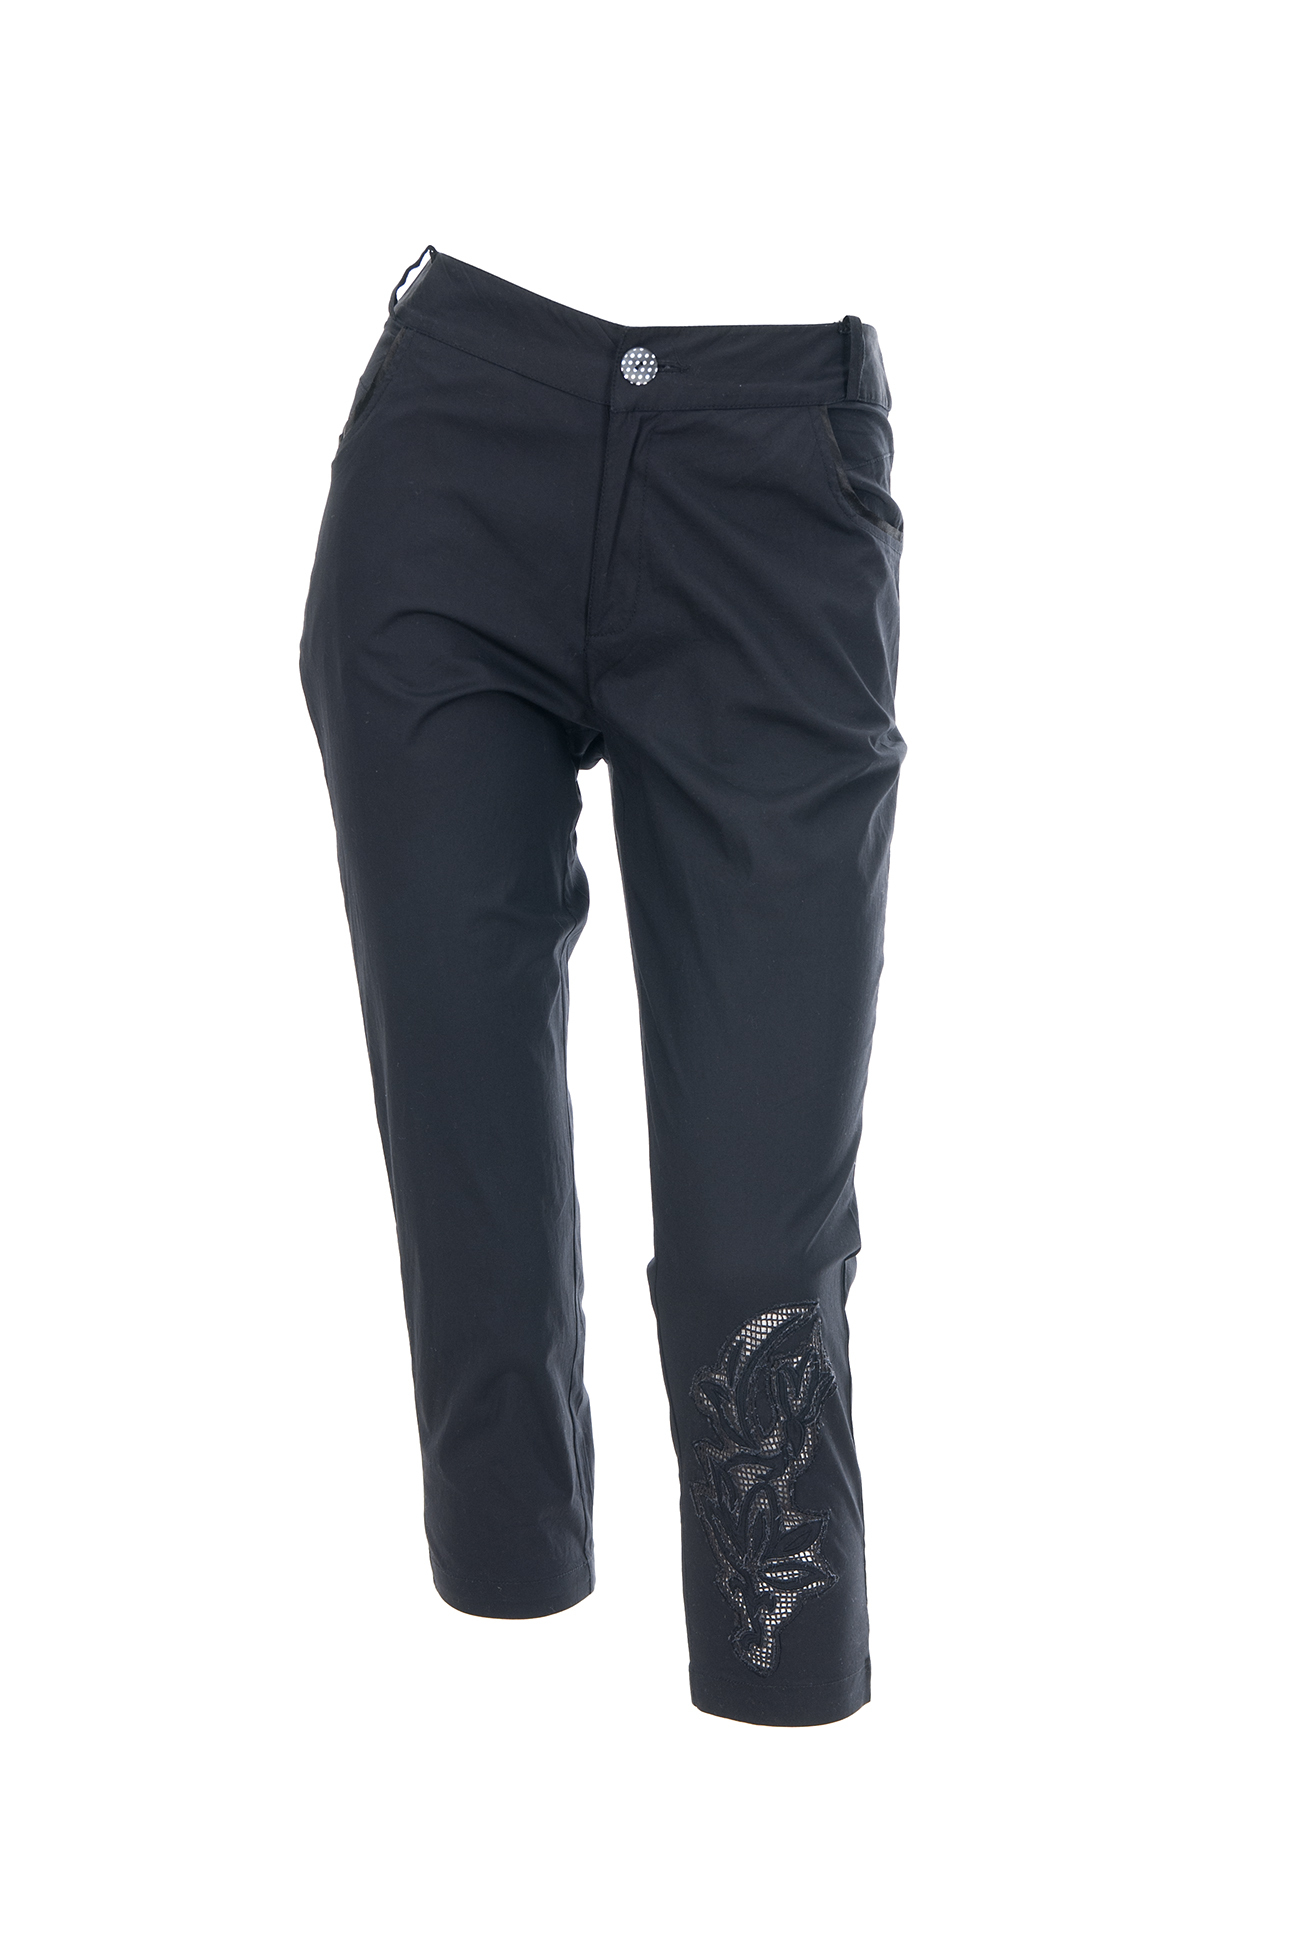 Les Fees Du Vent Couture: Midnight Orchid Cropped Pant (In Black & White) LFDV_888011